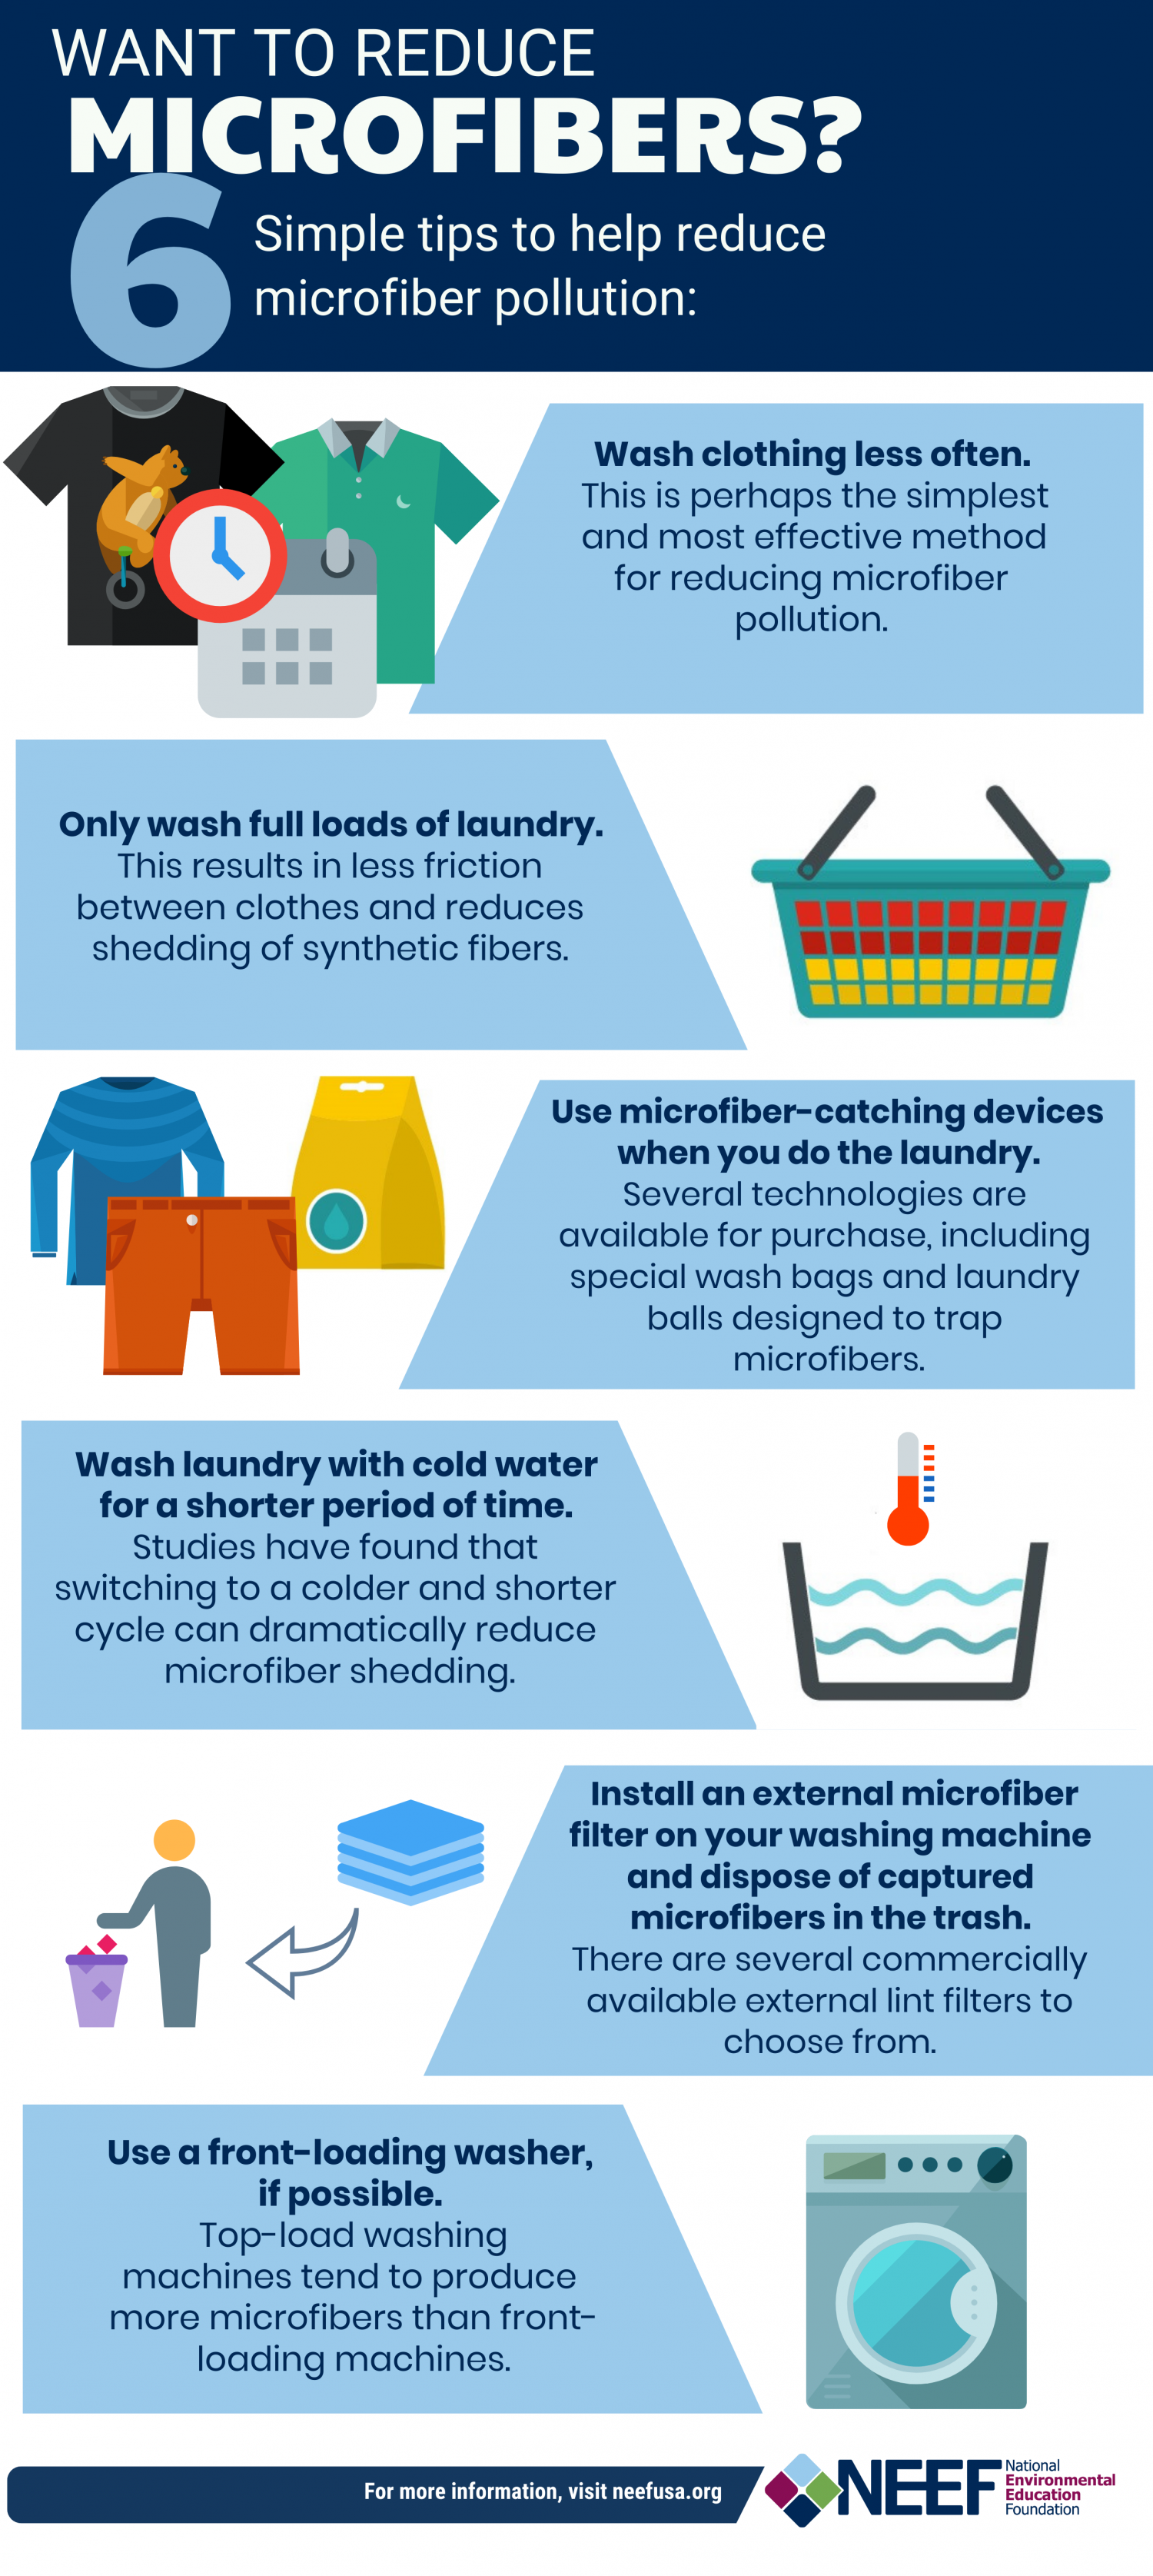 Want to reduce microfibers? 6 simple tips to help reduce microfiber pollution.